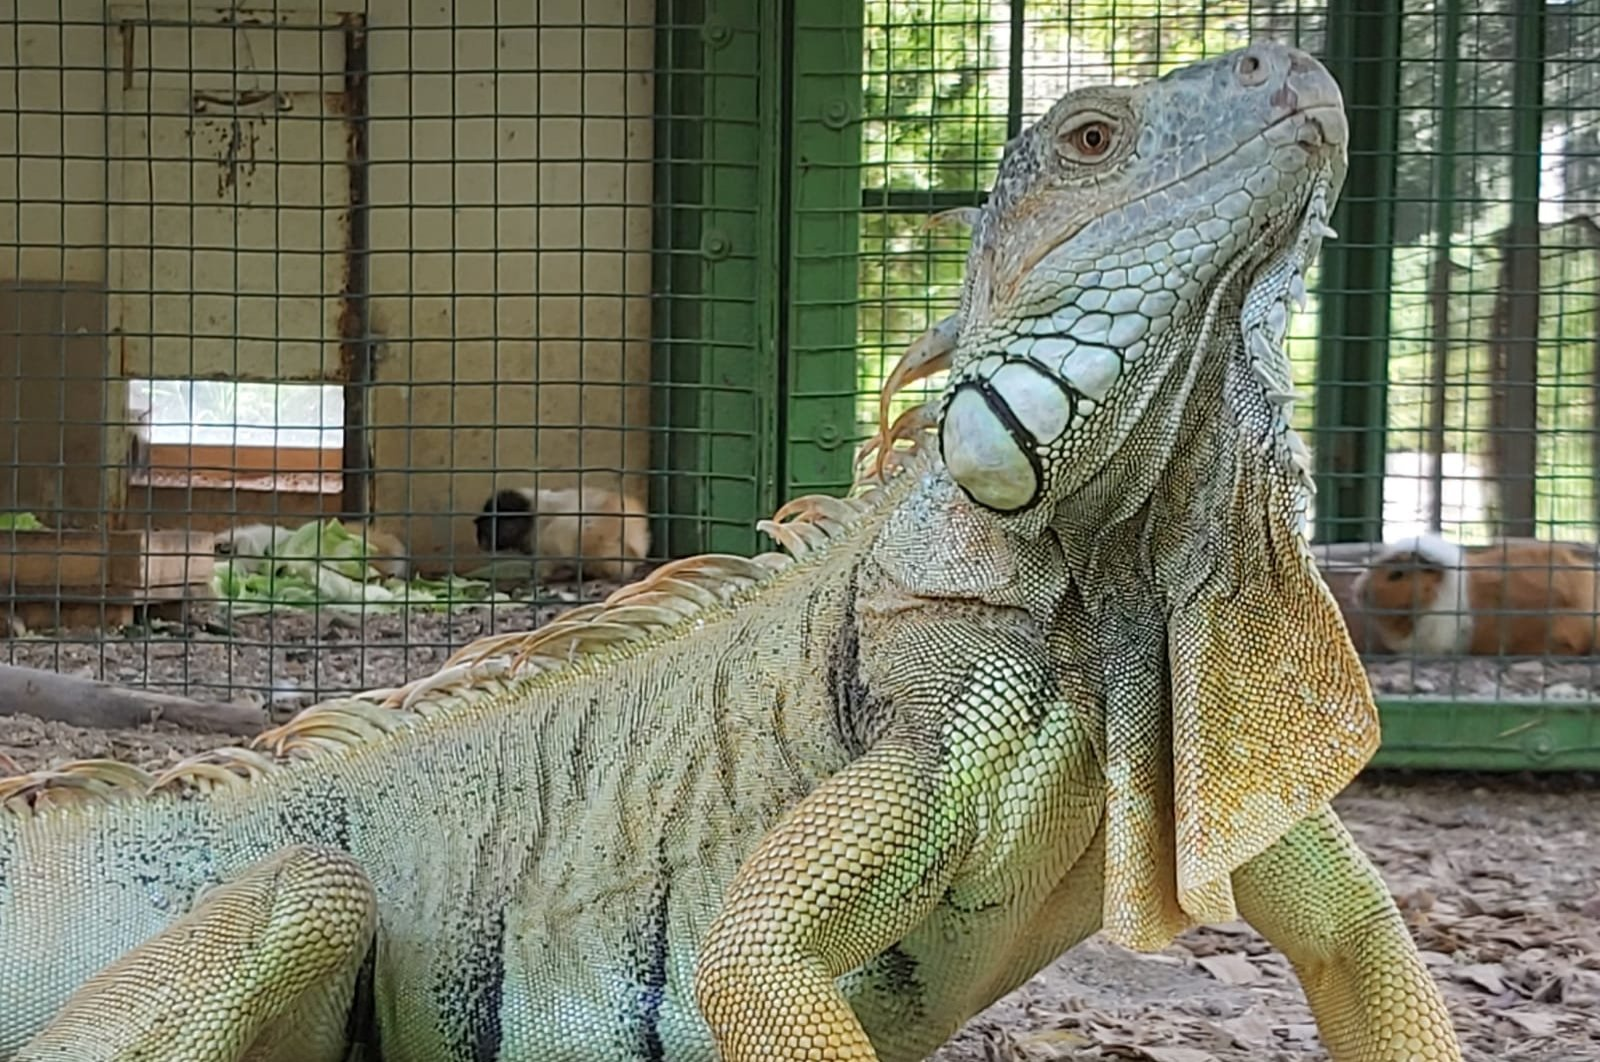 A newly arrived iguana is seen at the Tarsus Animal Park in the southern city of Mersin, Turkey, Sept. 8, 2020. (Mersin Metropolitan Municipality via AA)